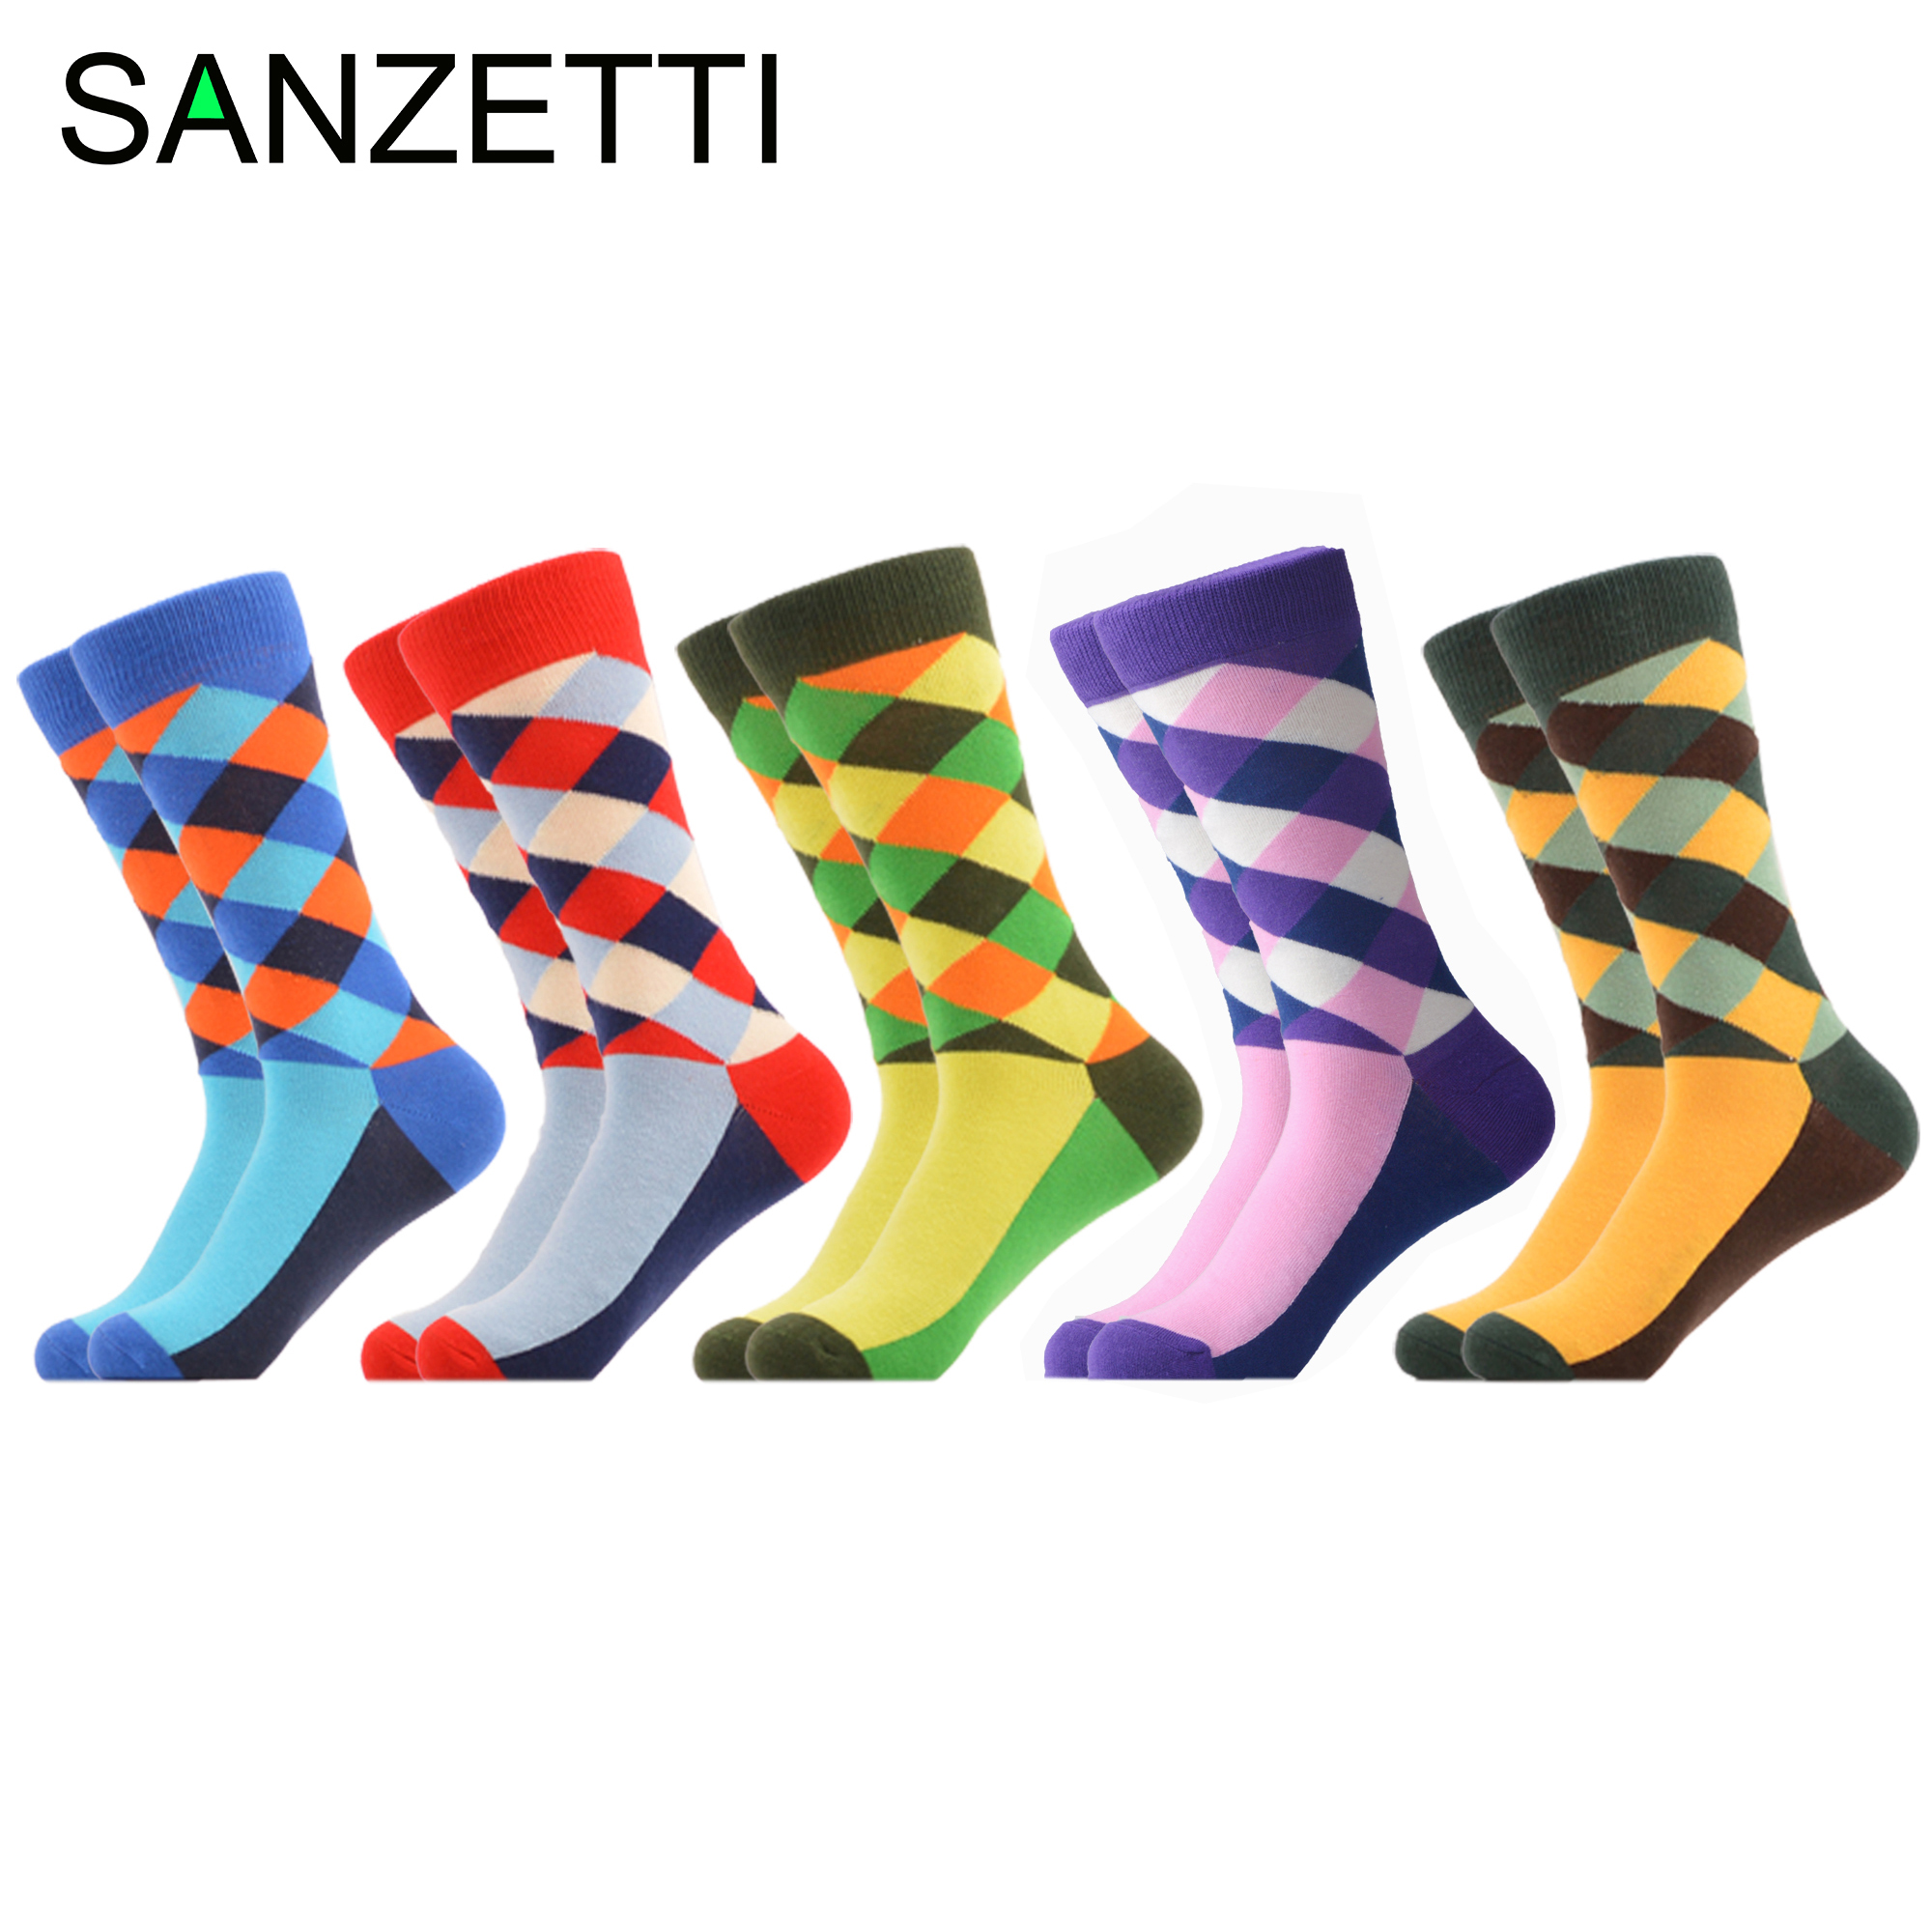 SANZETTI 5 Pair/Lot Colorful Socks Men's Casual Combed Cotton Socks Crew Socks Funny Geometric Novelty Bright Plaid Dress Socks